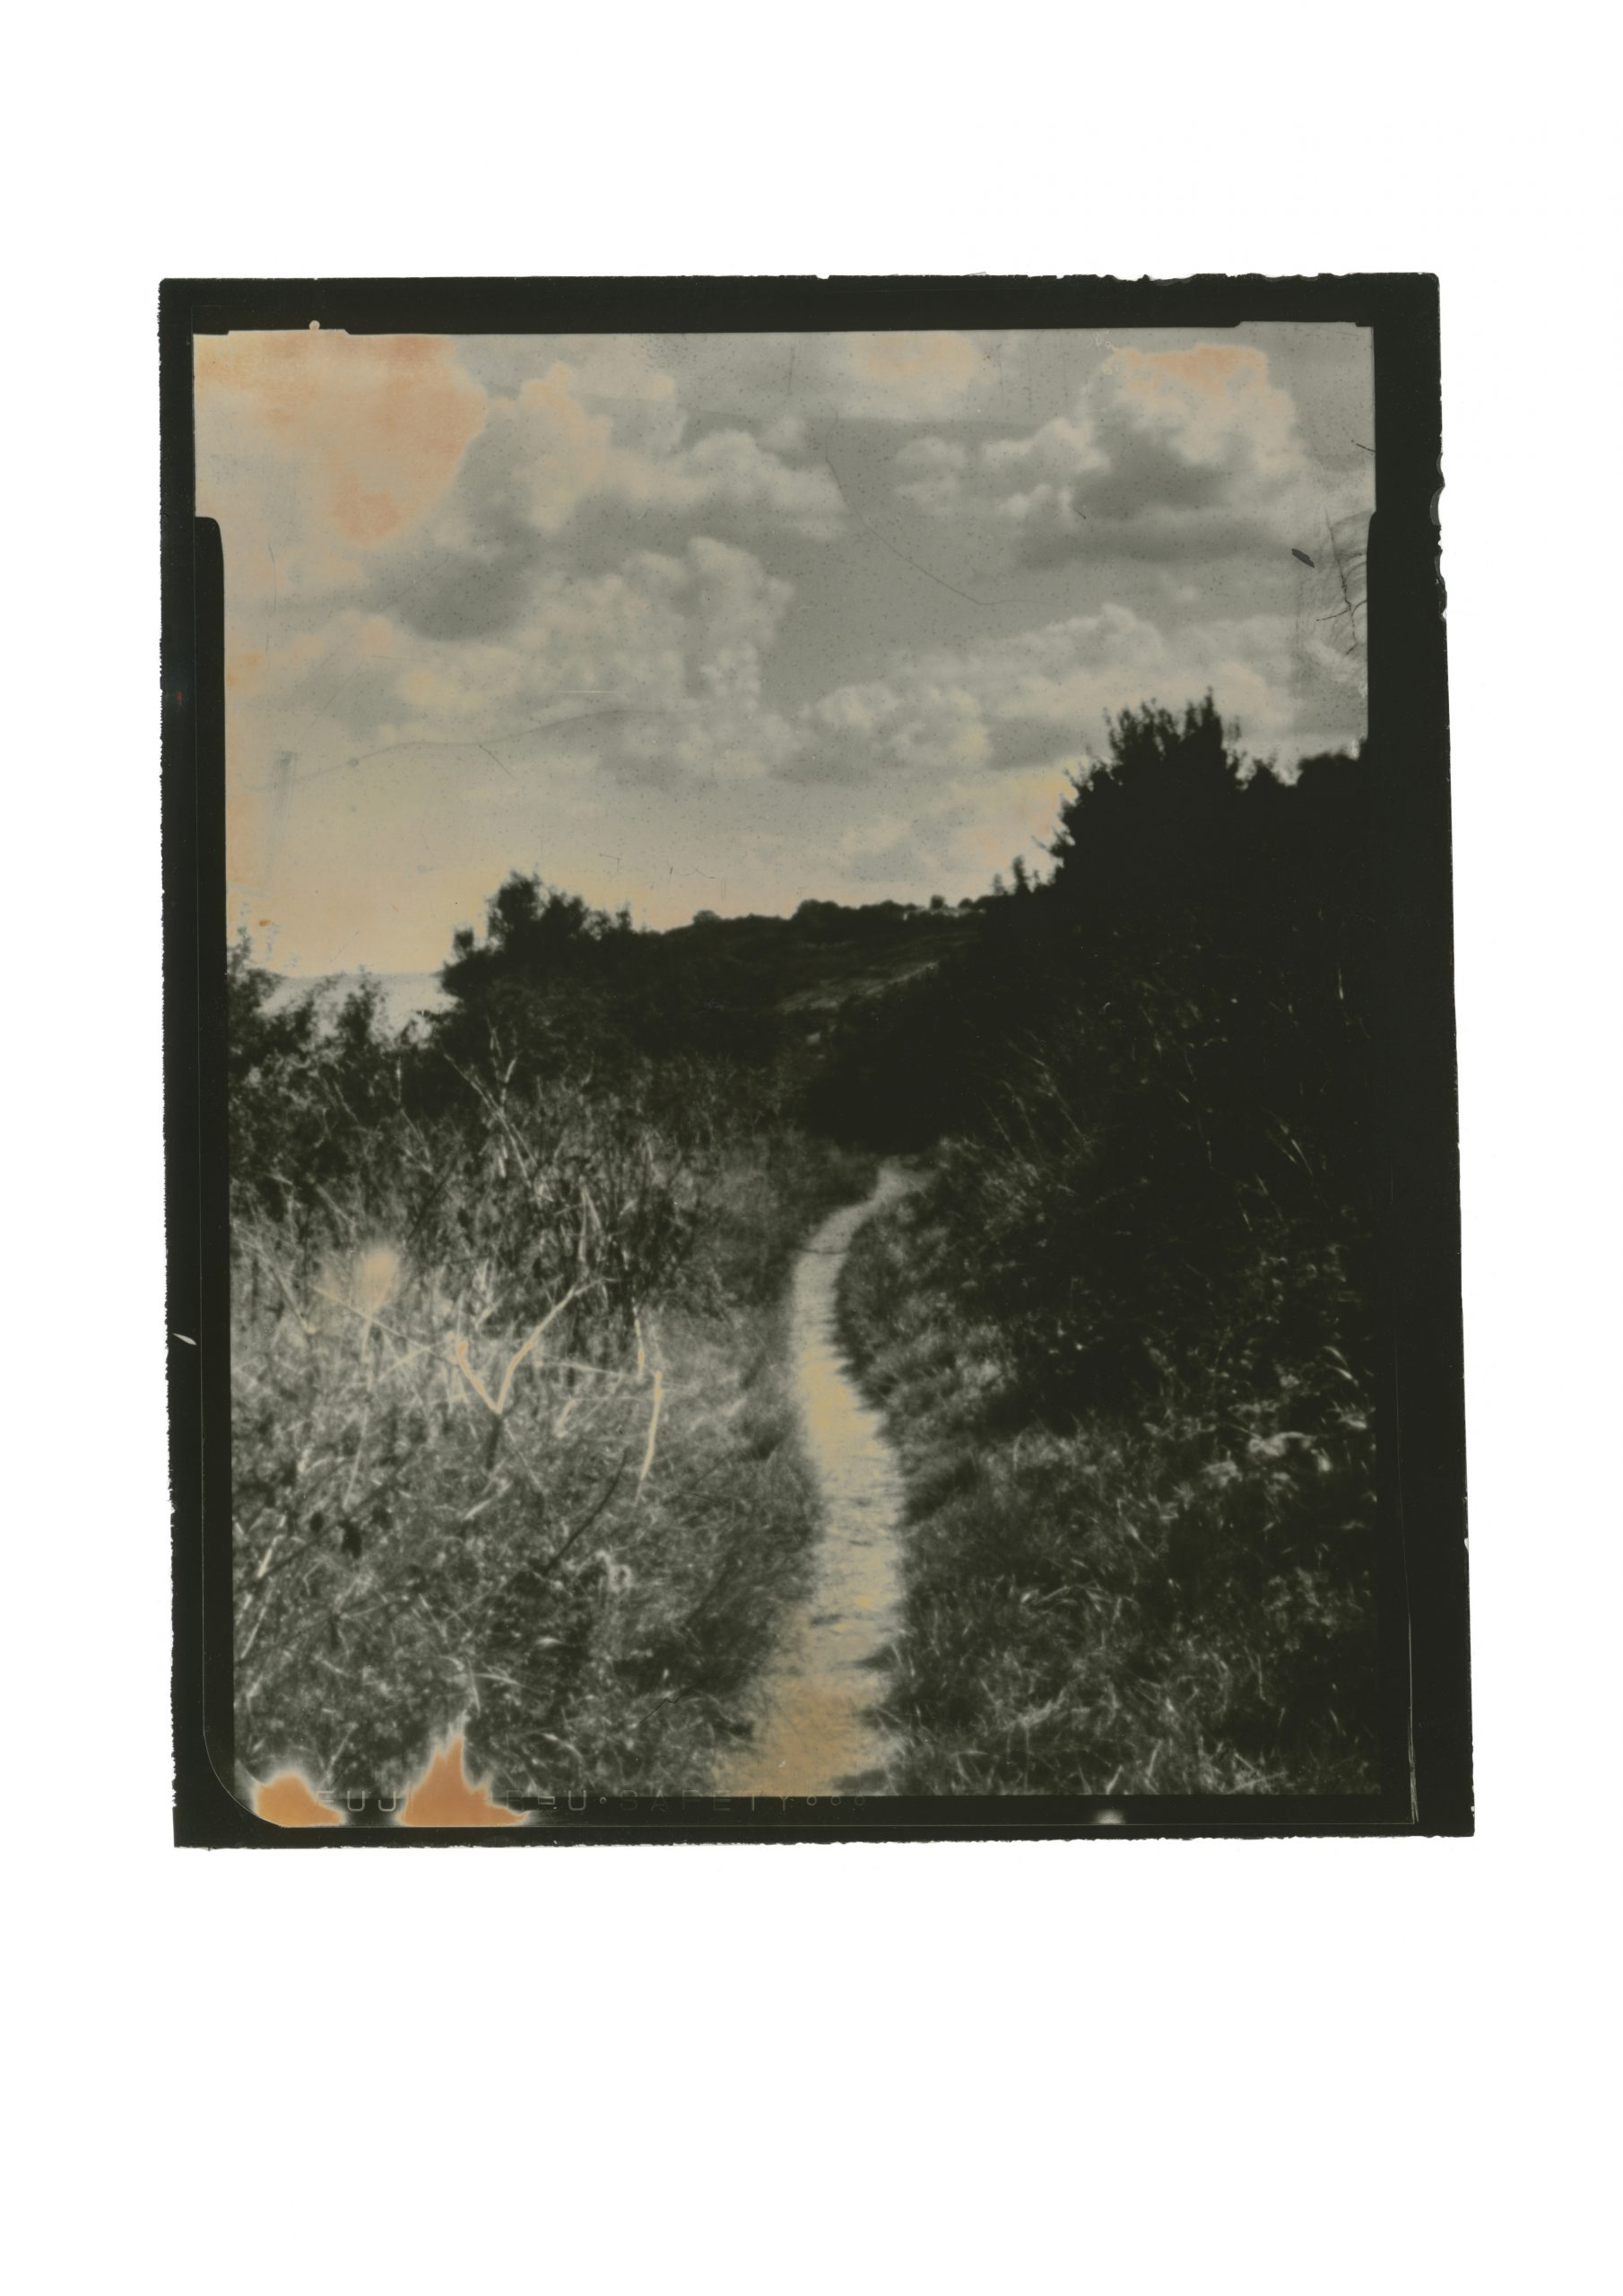 central path amongst overgrown bushes leading to an almost vanishing points it curves out of sight. sky full of clouds with a hint of orange from hand painting